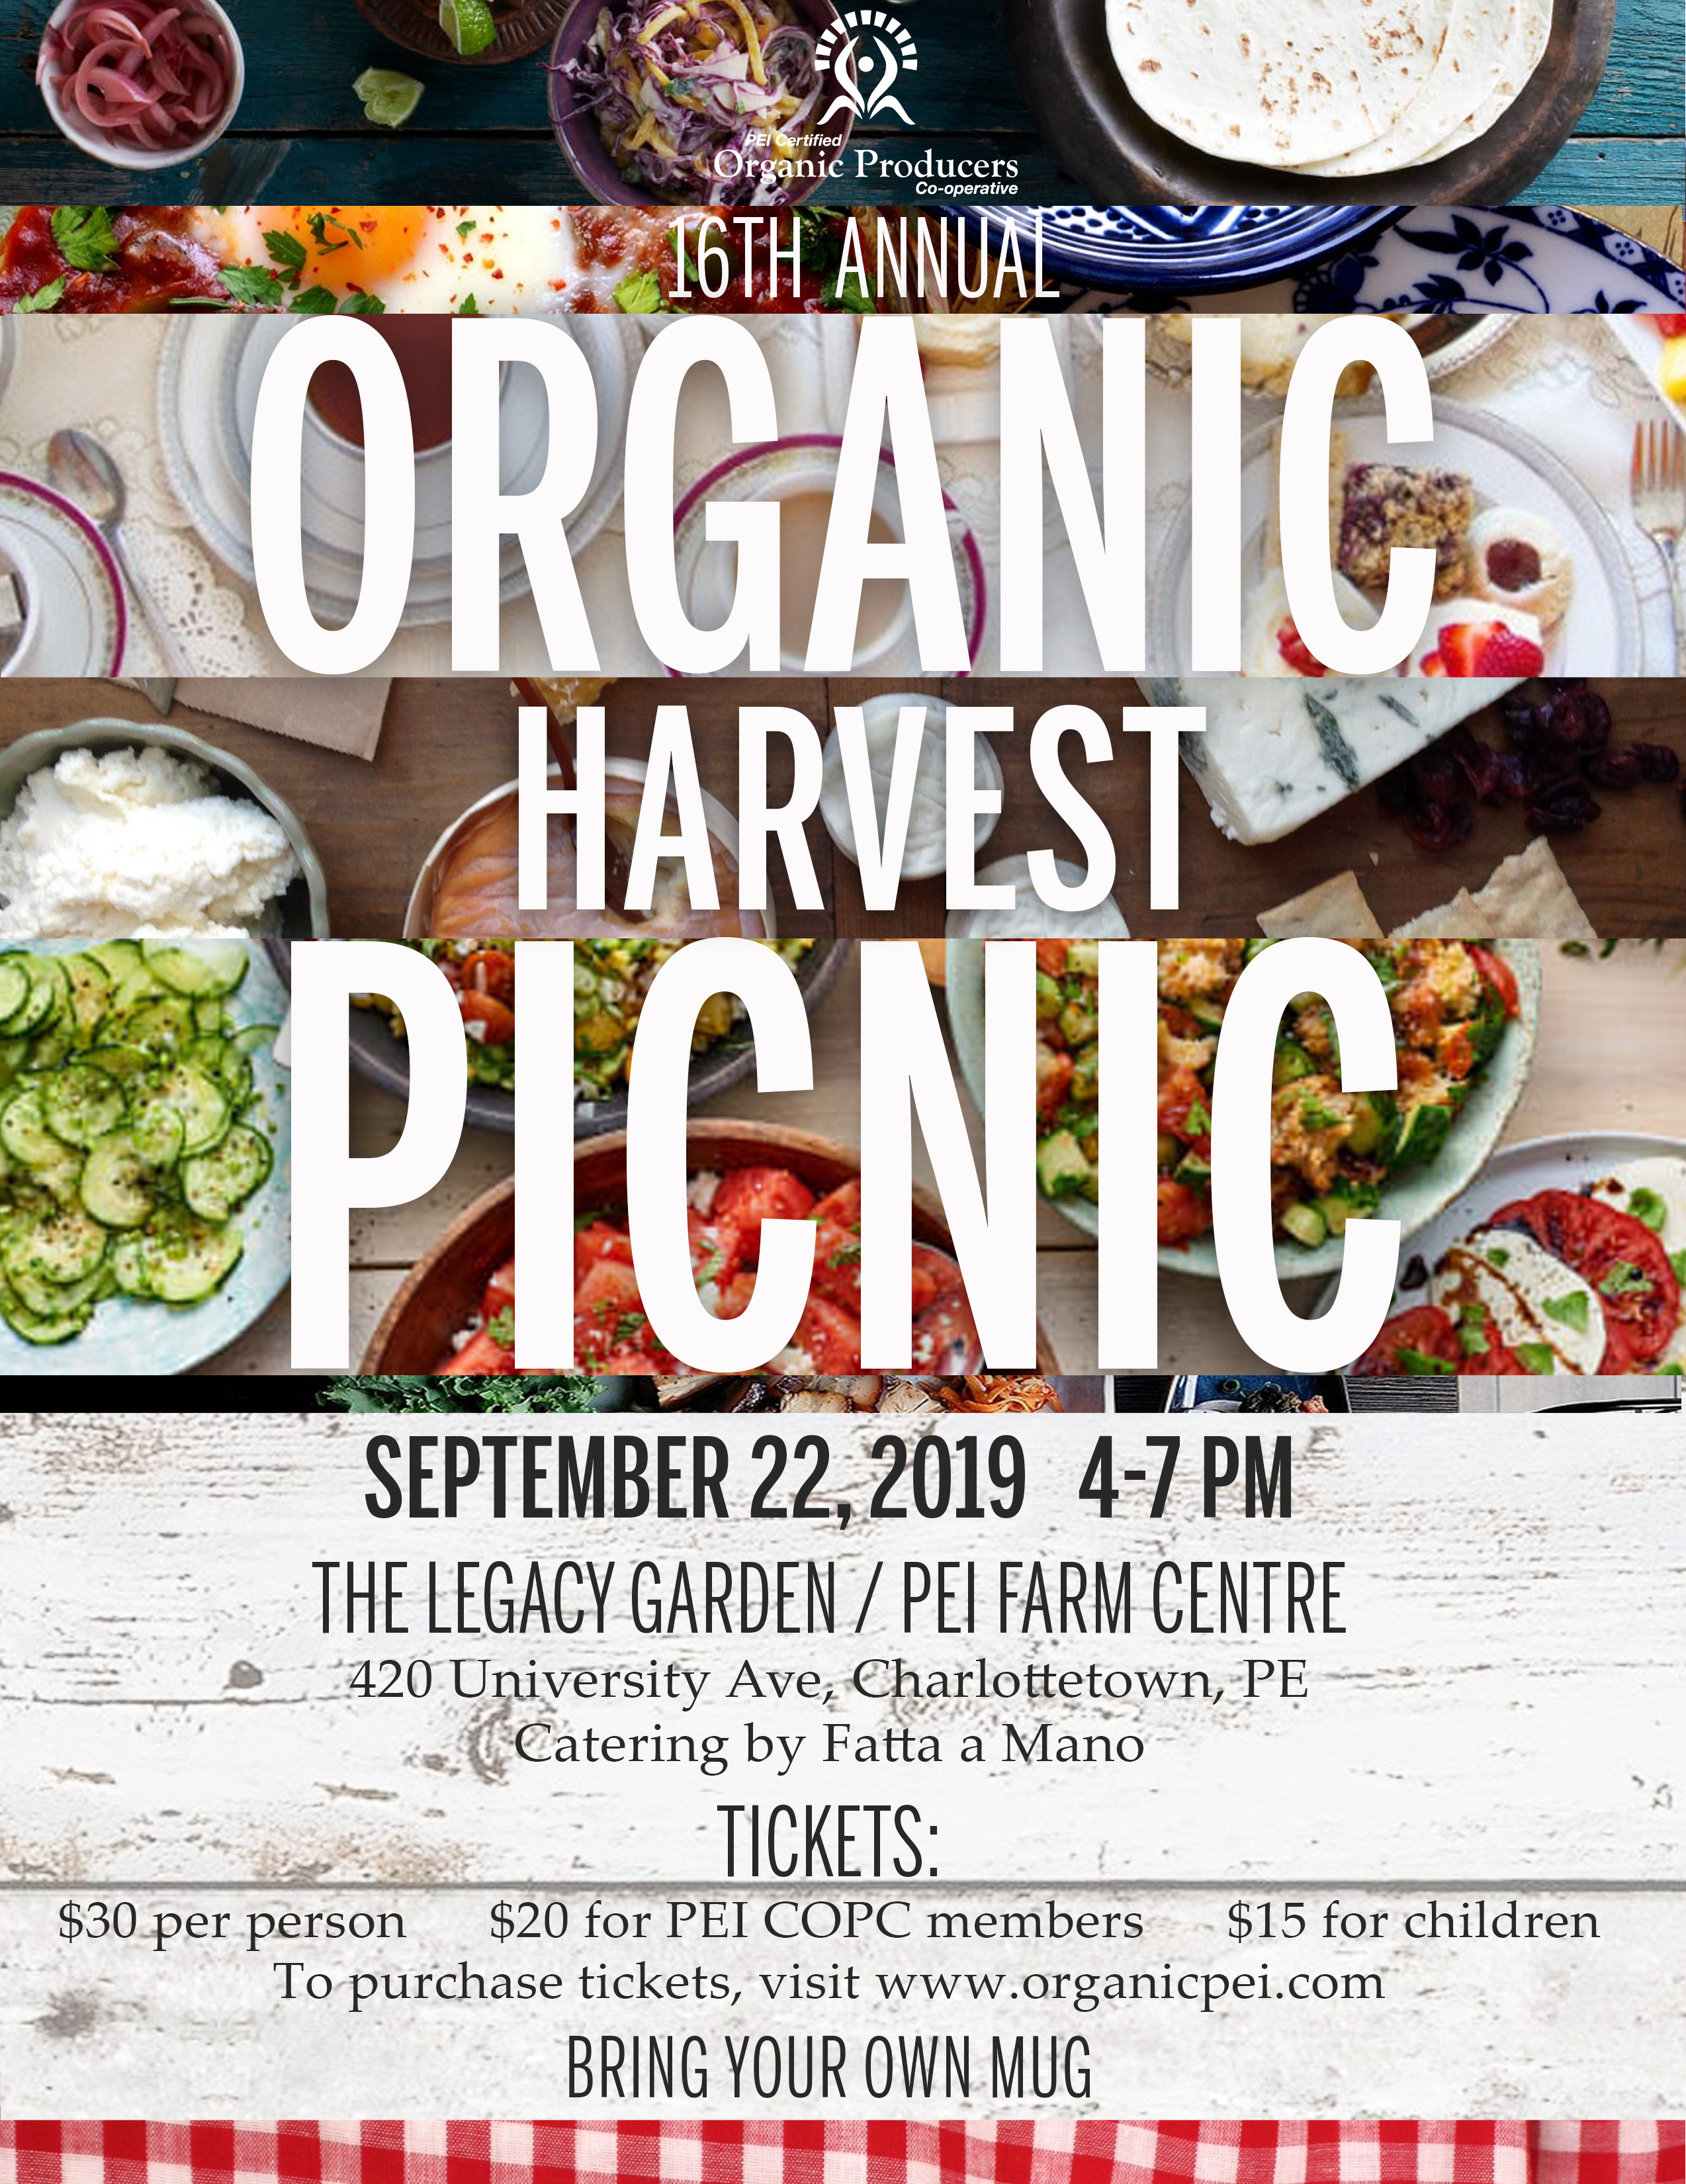 PEI Certified Organic Producers Cooperative – Producer Based